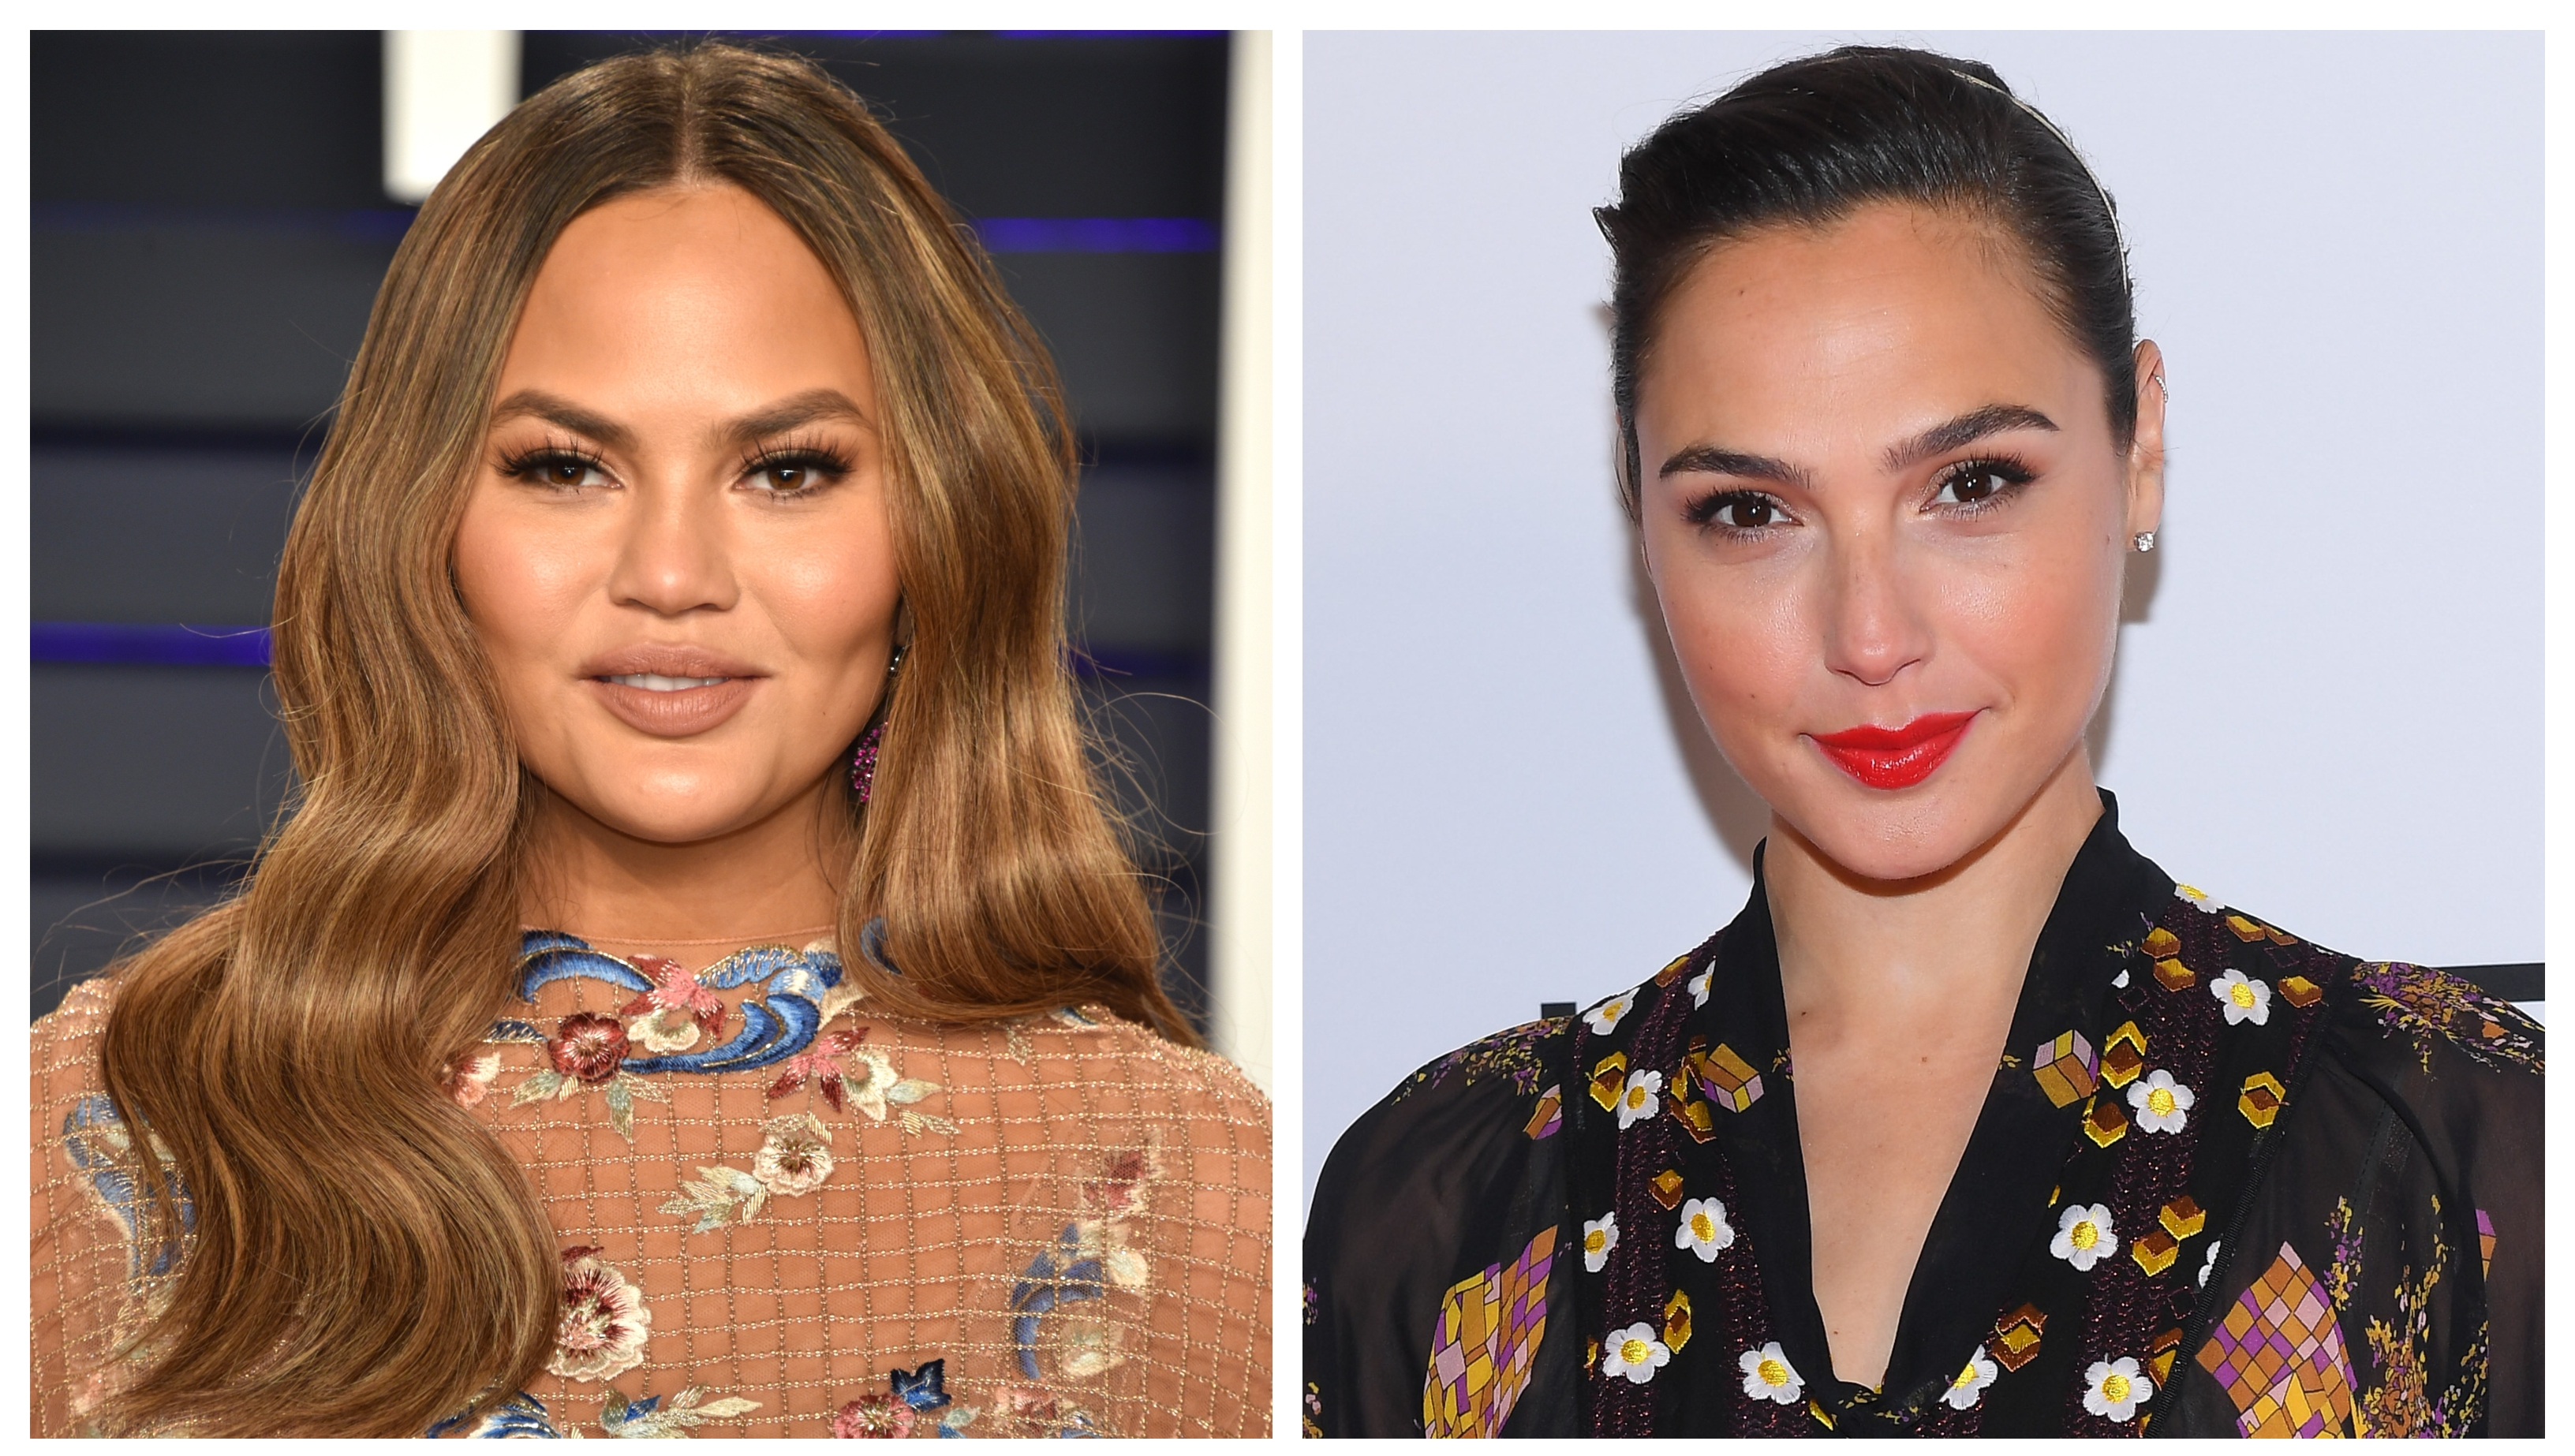 Gal Gadot Offered to Send Chrissy Teigen's Daughter a New Wonder Woman Action Figure and It's so Pure